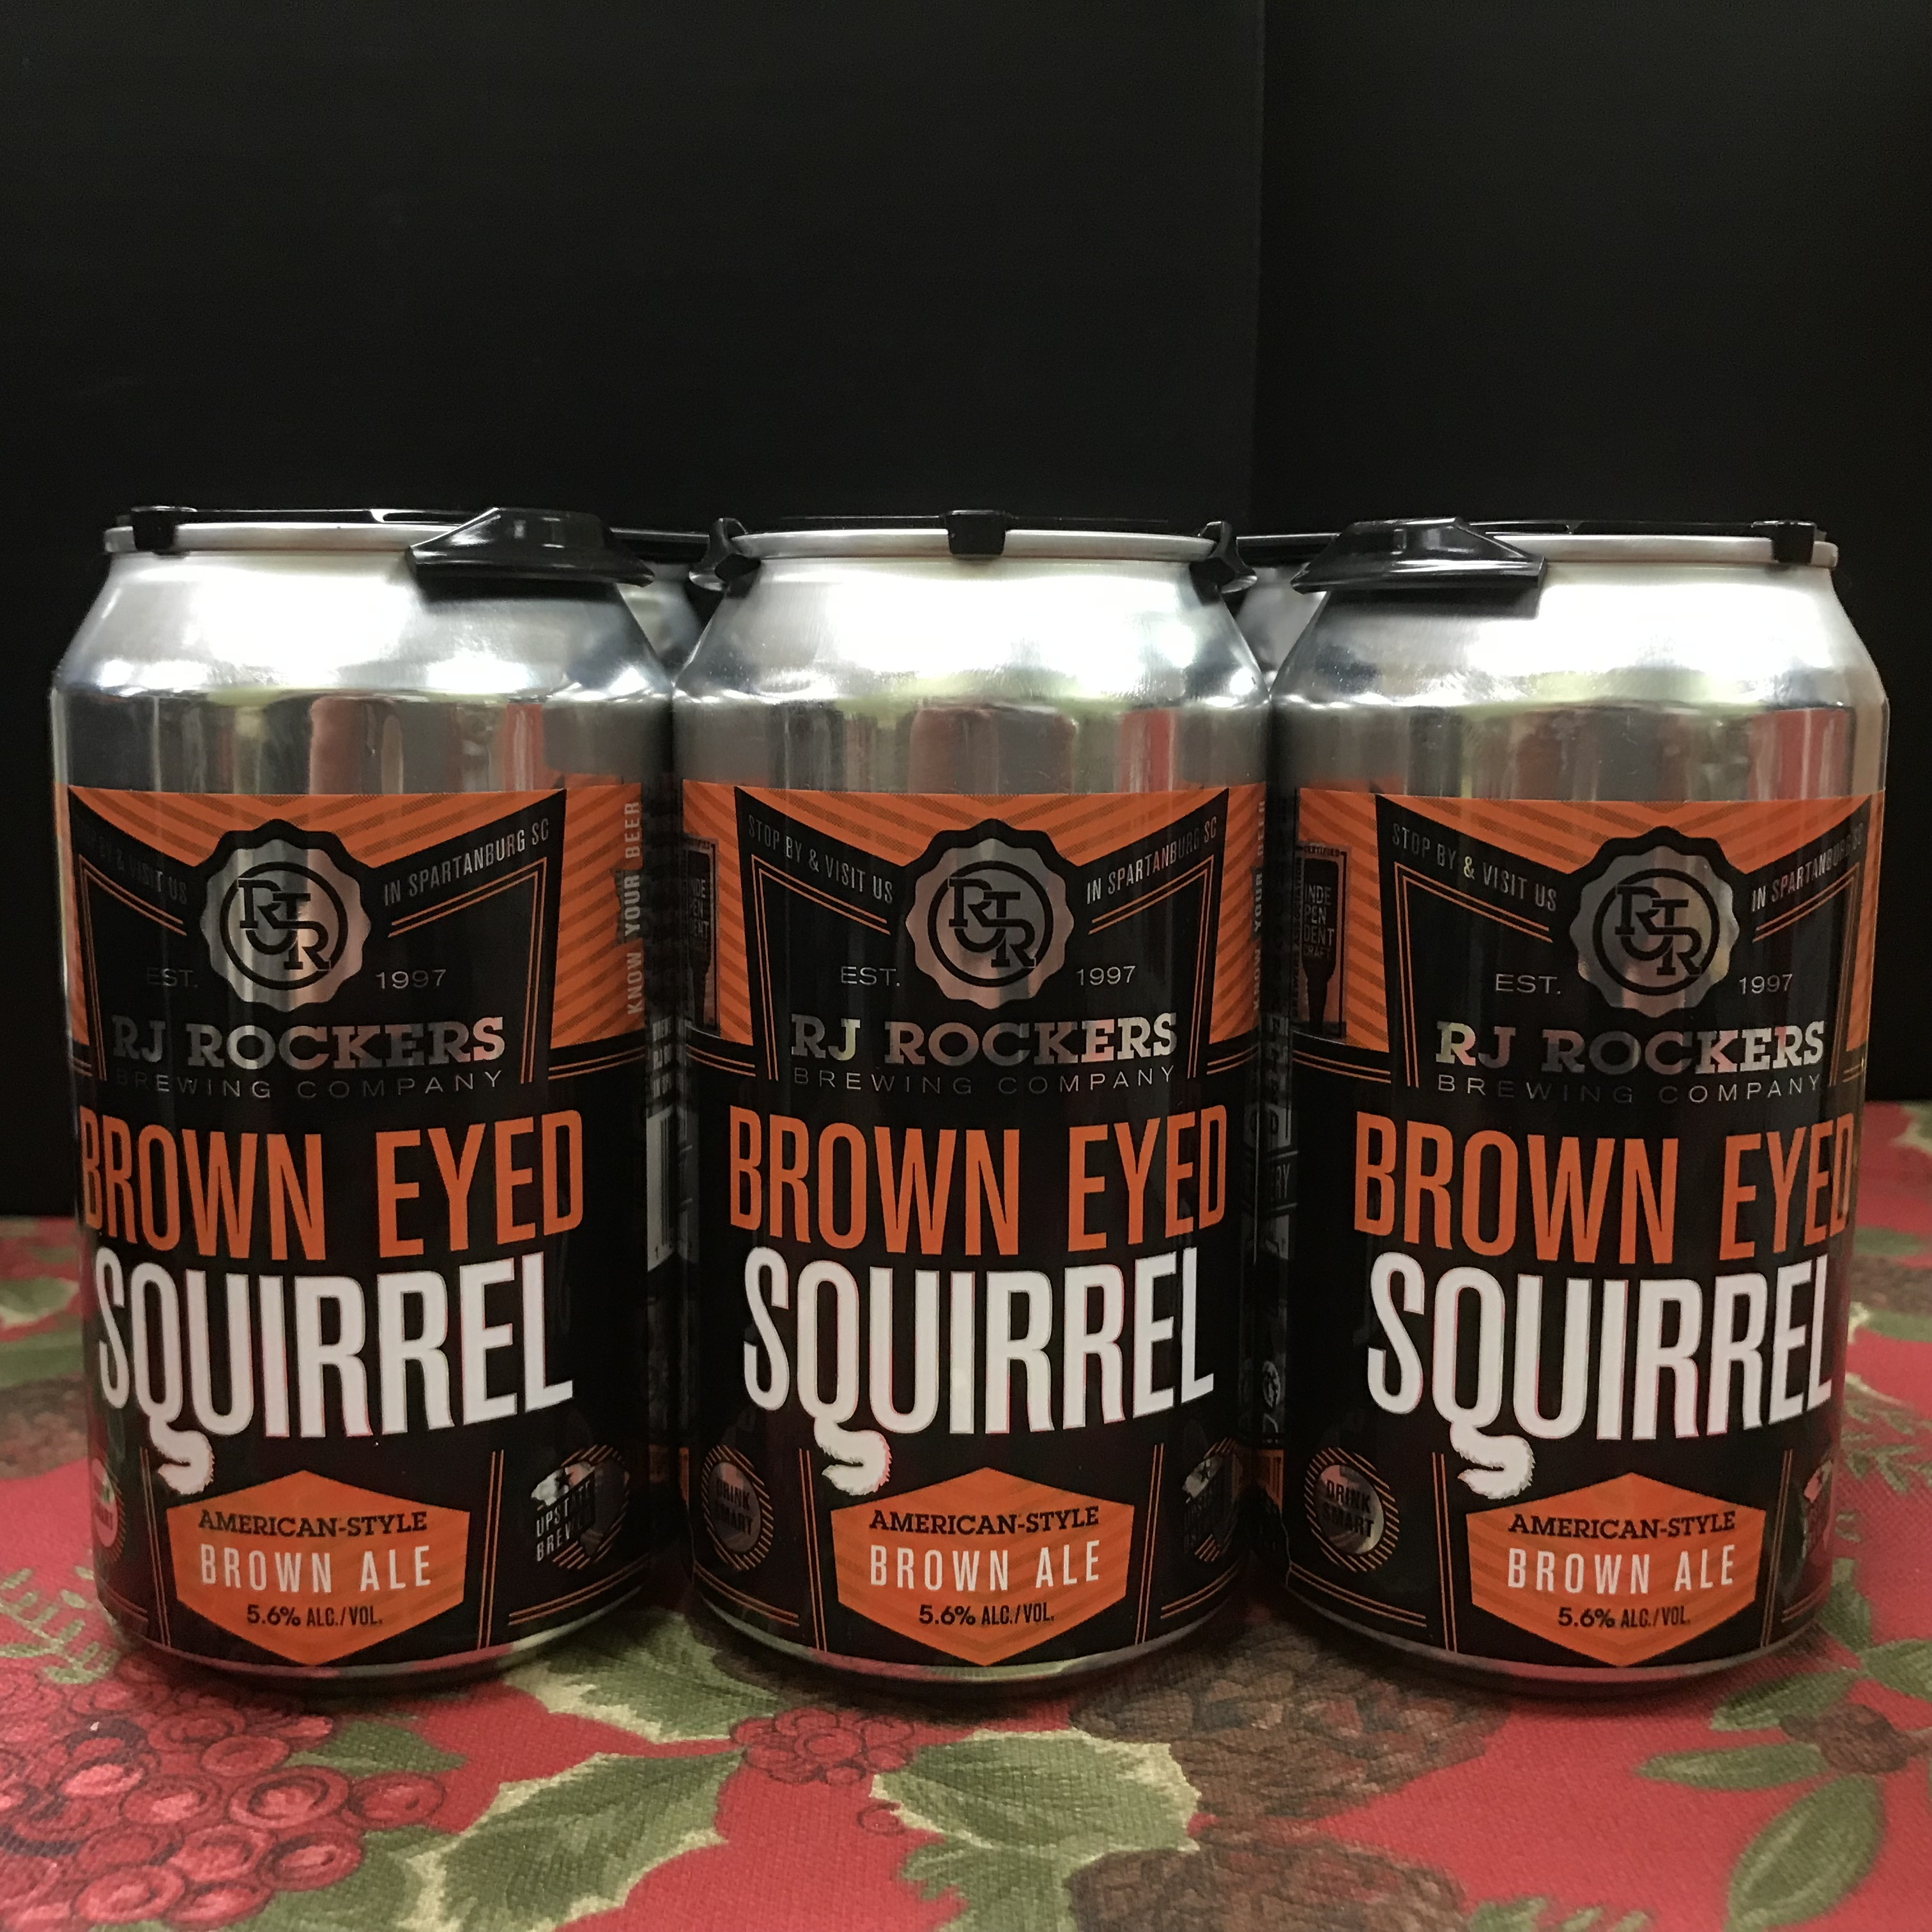 RJ Rockers Brown Eyed Squirrel Brown Ale 6pk/12oz cans